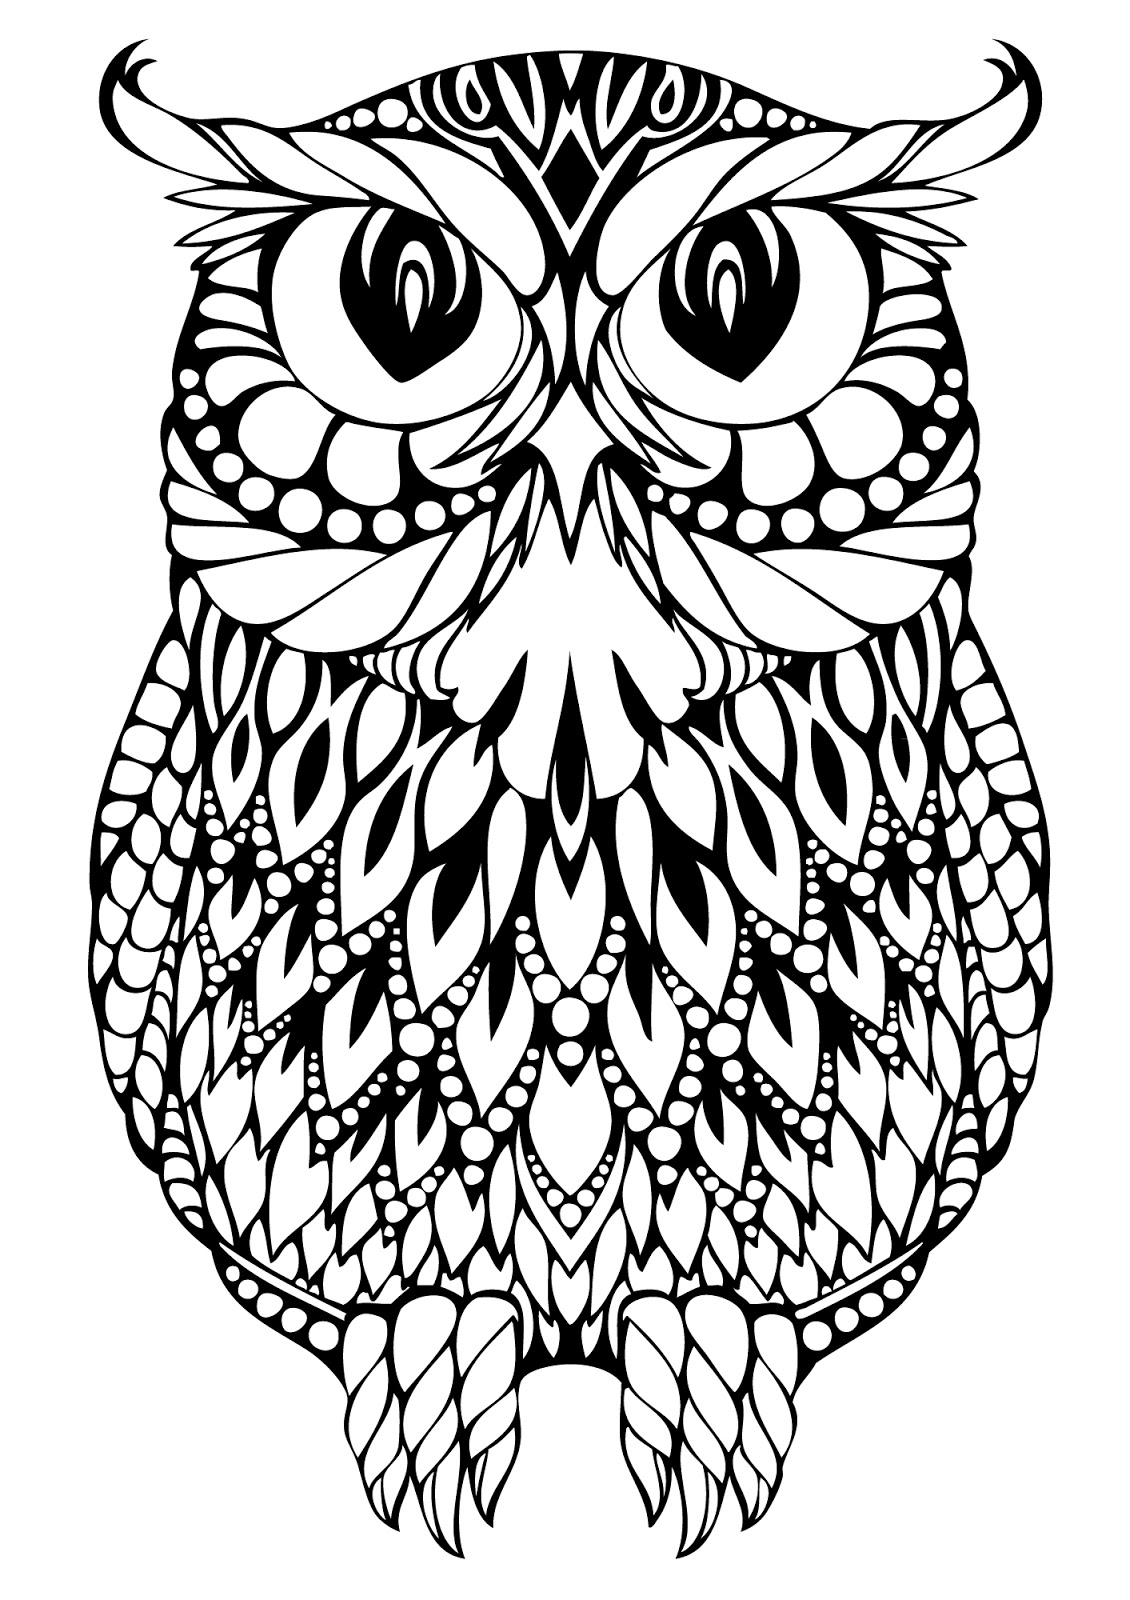 black and white coloring pages for adults get this cool trippy coloring pages for grown ups ik6s9 adults and black coloring pages for white